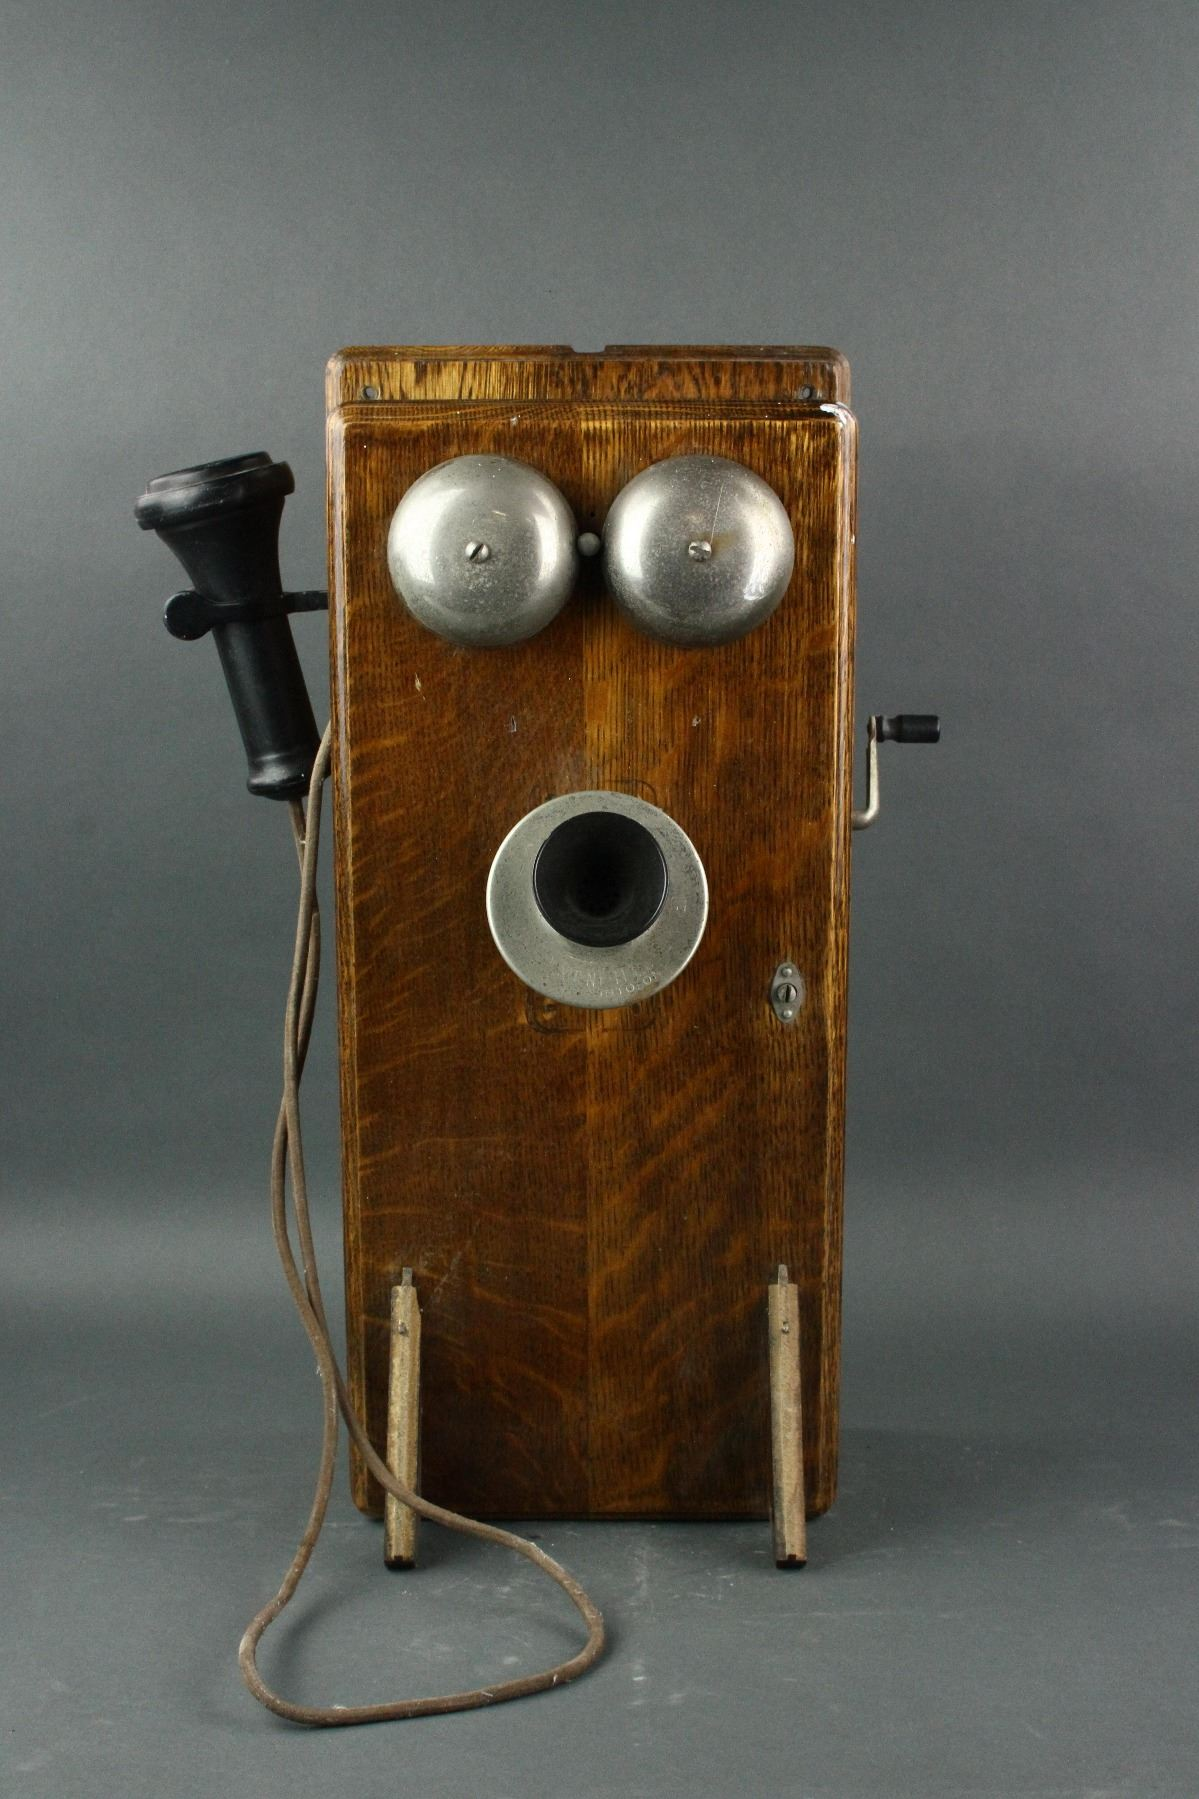 Canadian Antique Wall Telephone Set on